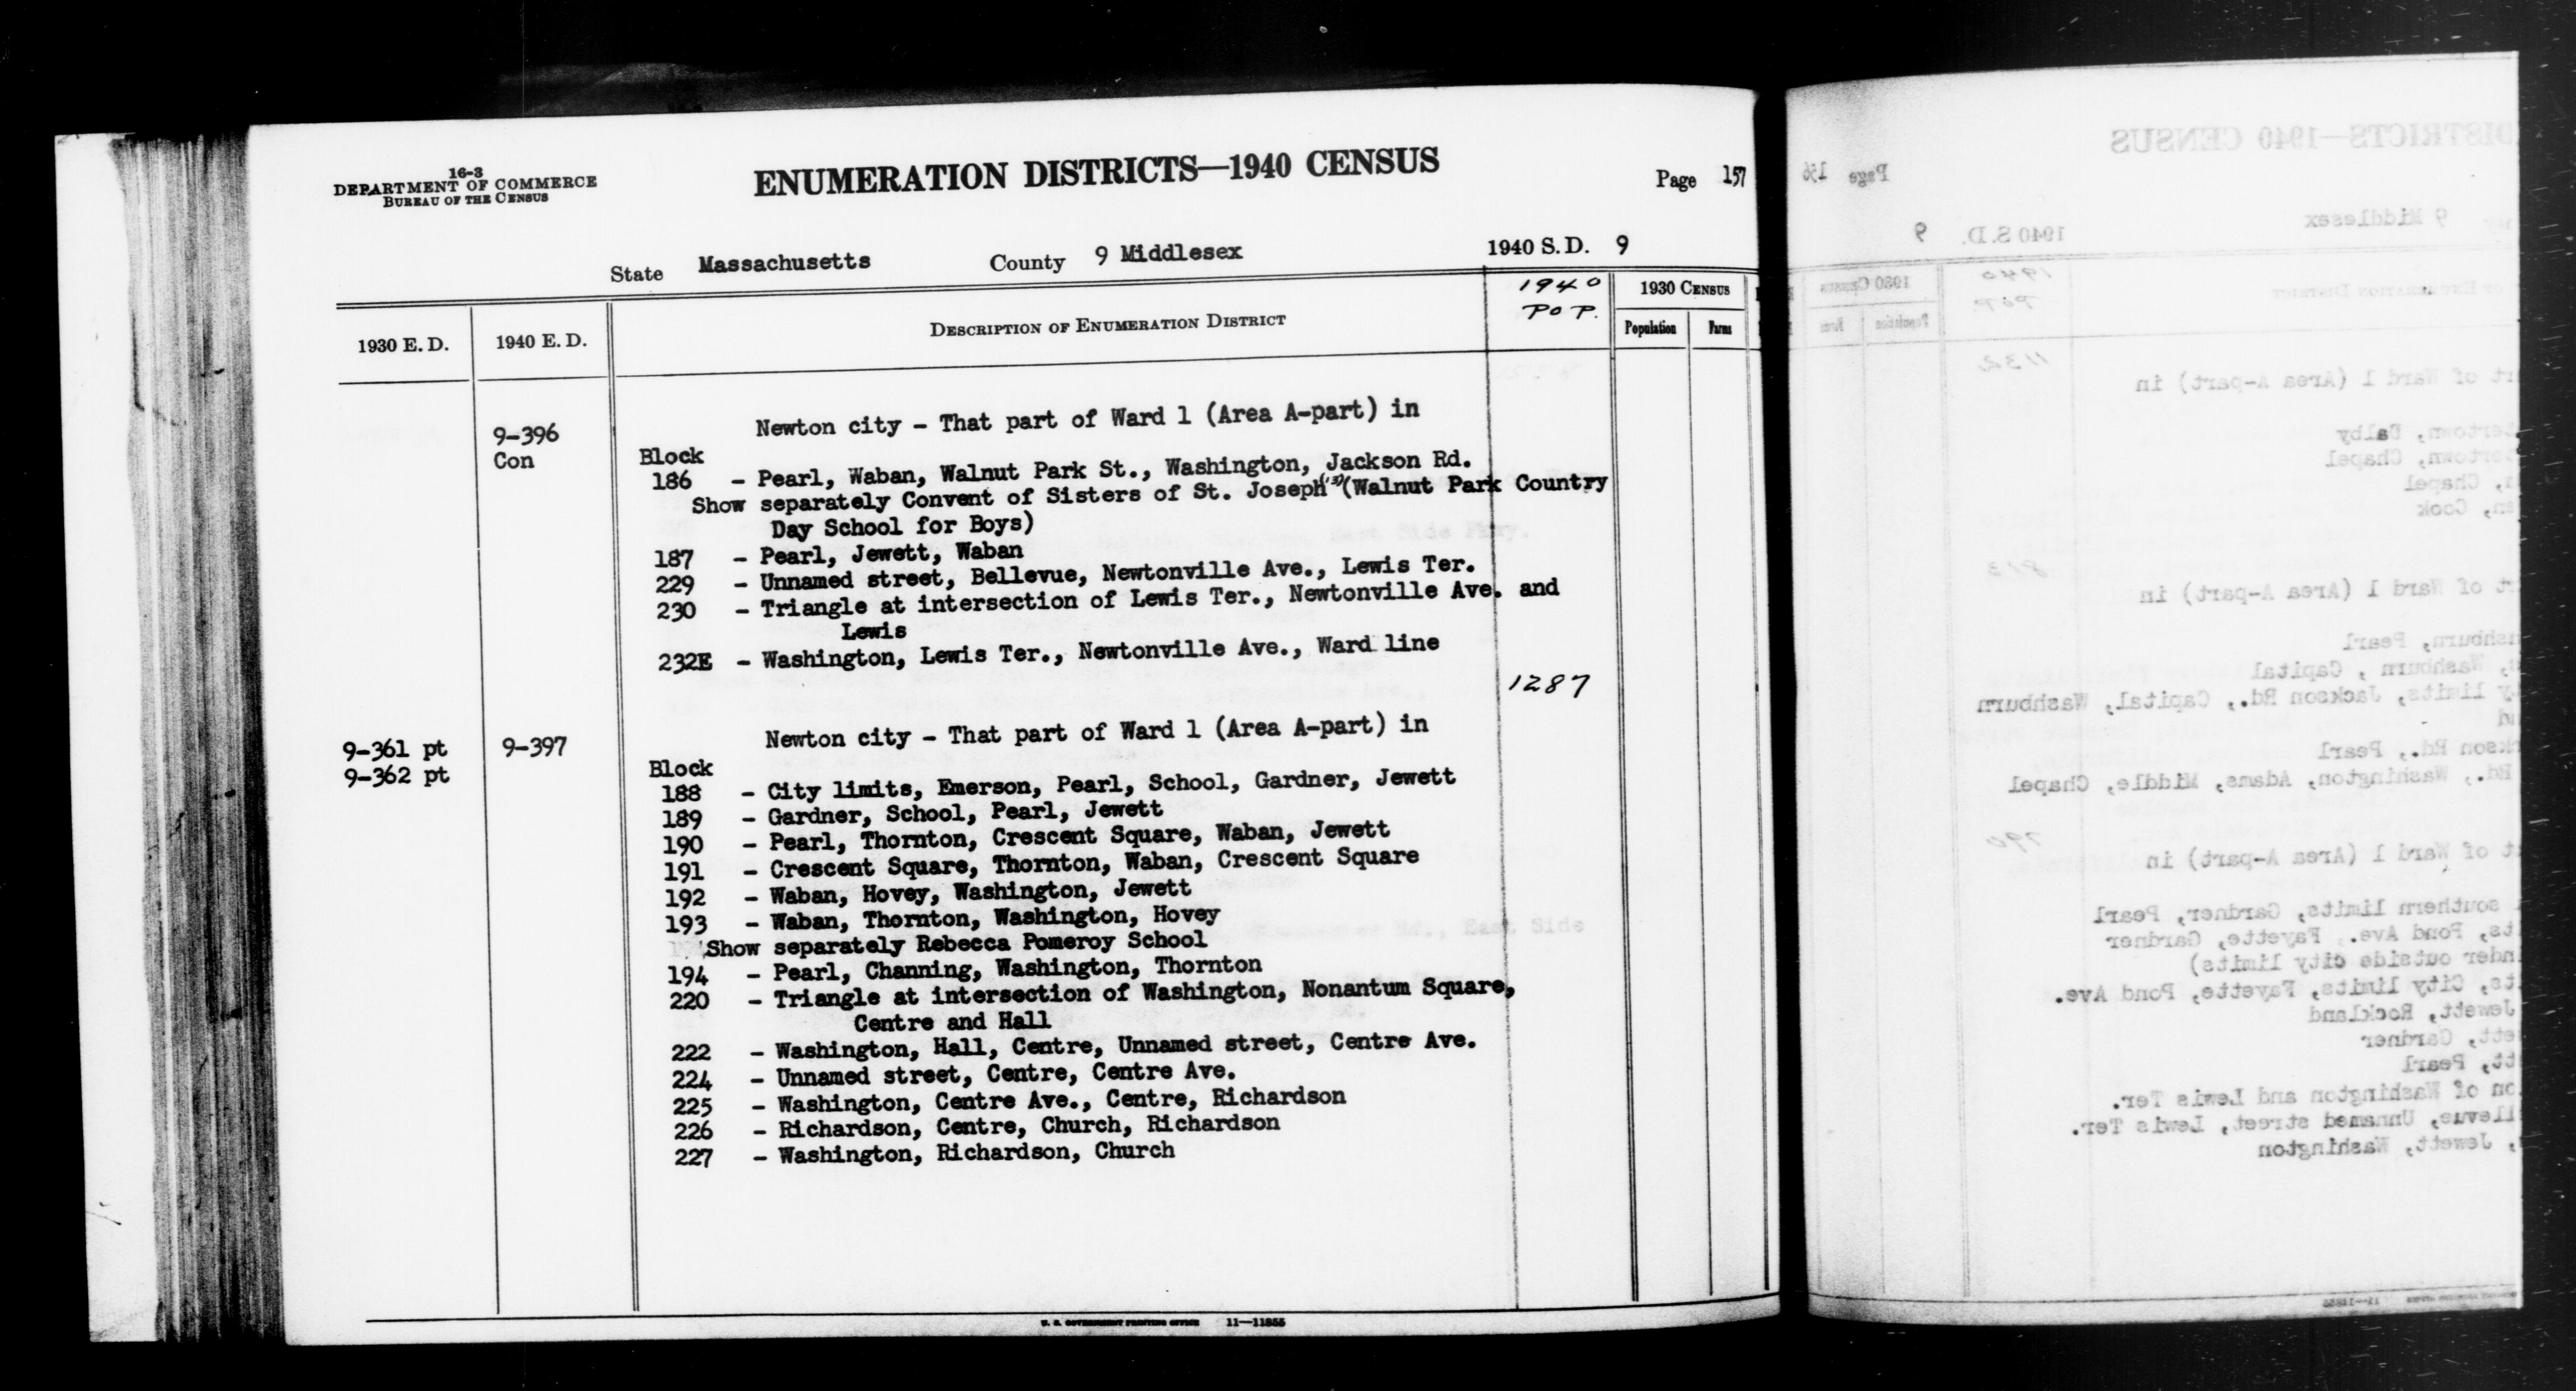 1940 Census Enumeration District Descriptions - Massachusetts - Middlesex County - ED 9-396, ED 9-397